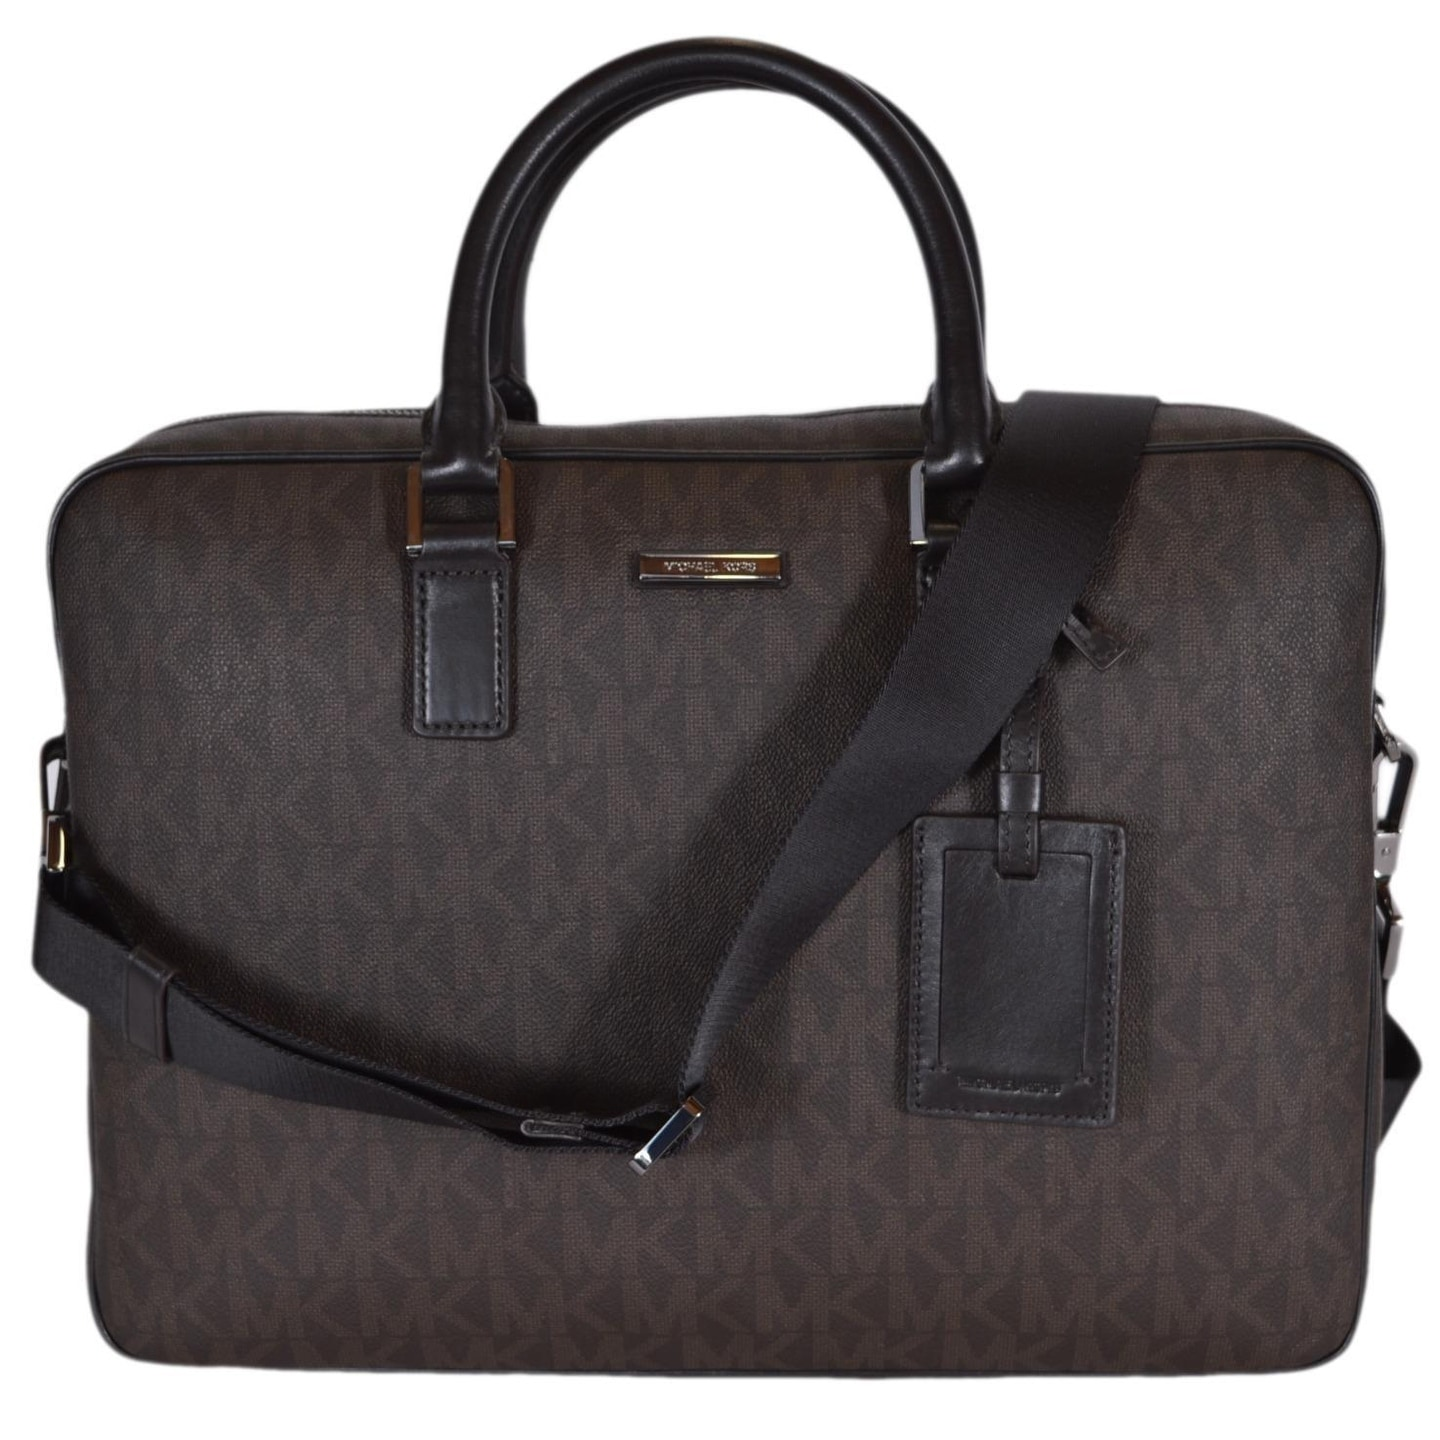 784eb51be2a6 Shop Michael Kors Men s Brown Coated Canvas Logo Jet Set Briefcase Bag -  Free Shipping Today - Overstock - 21585724